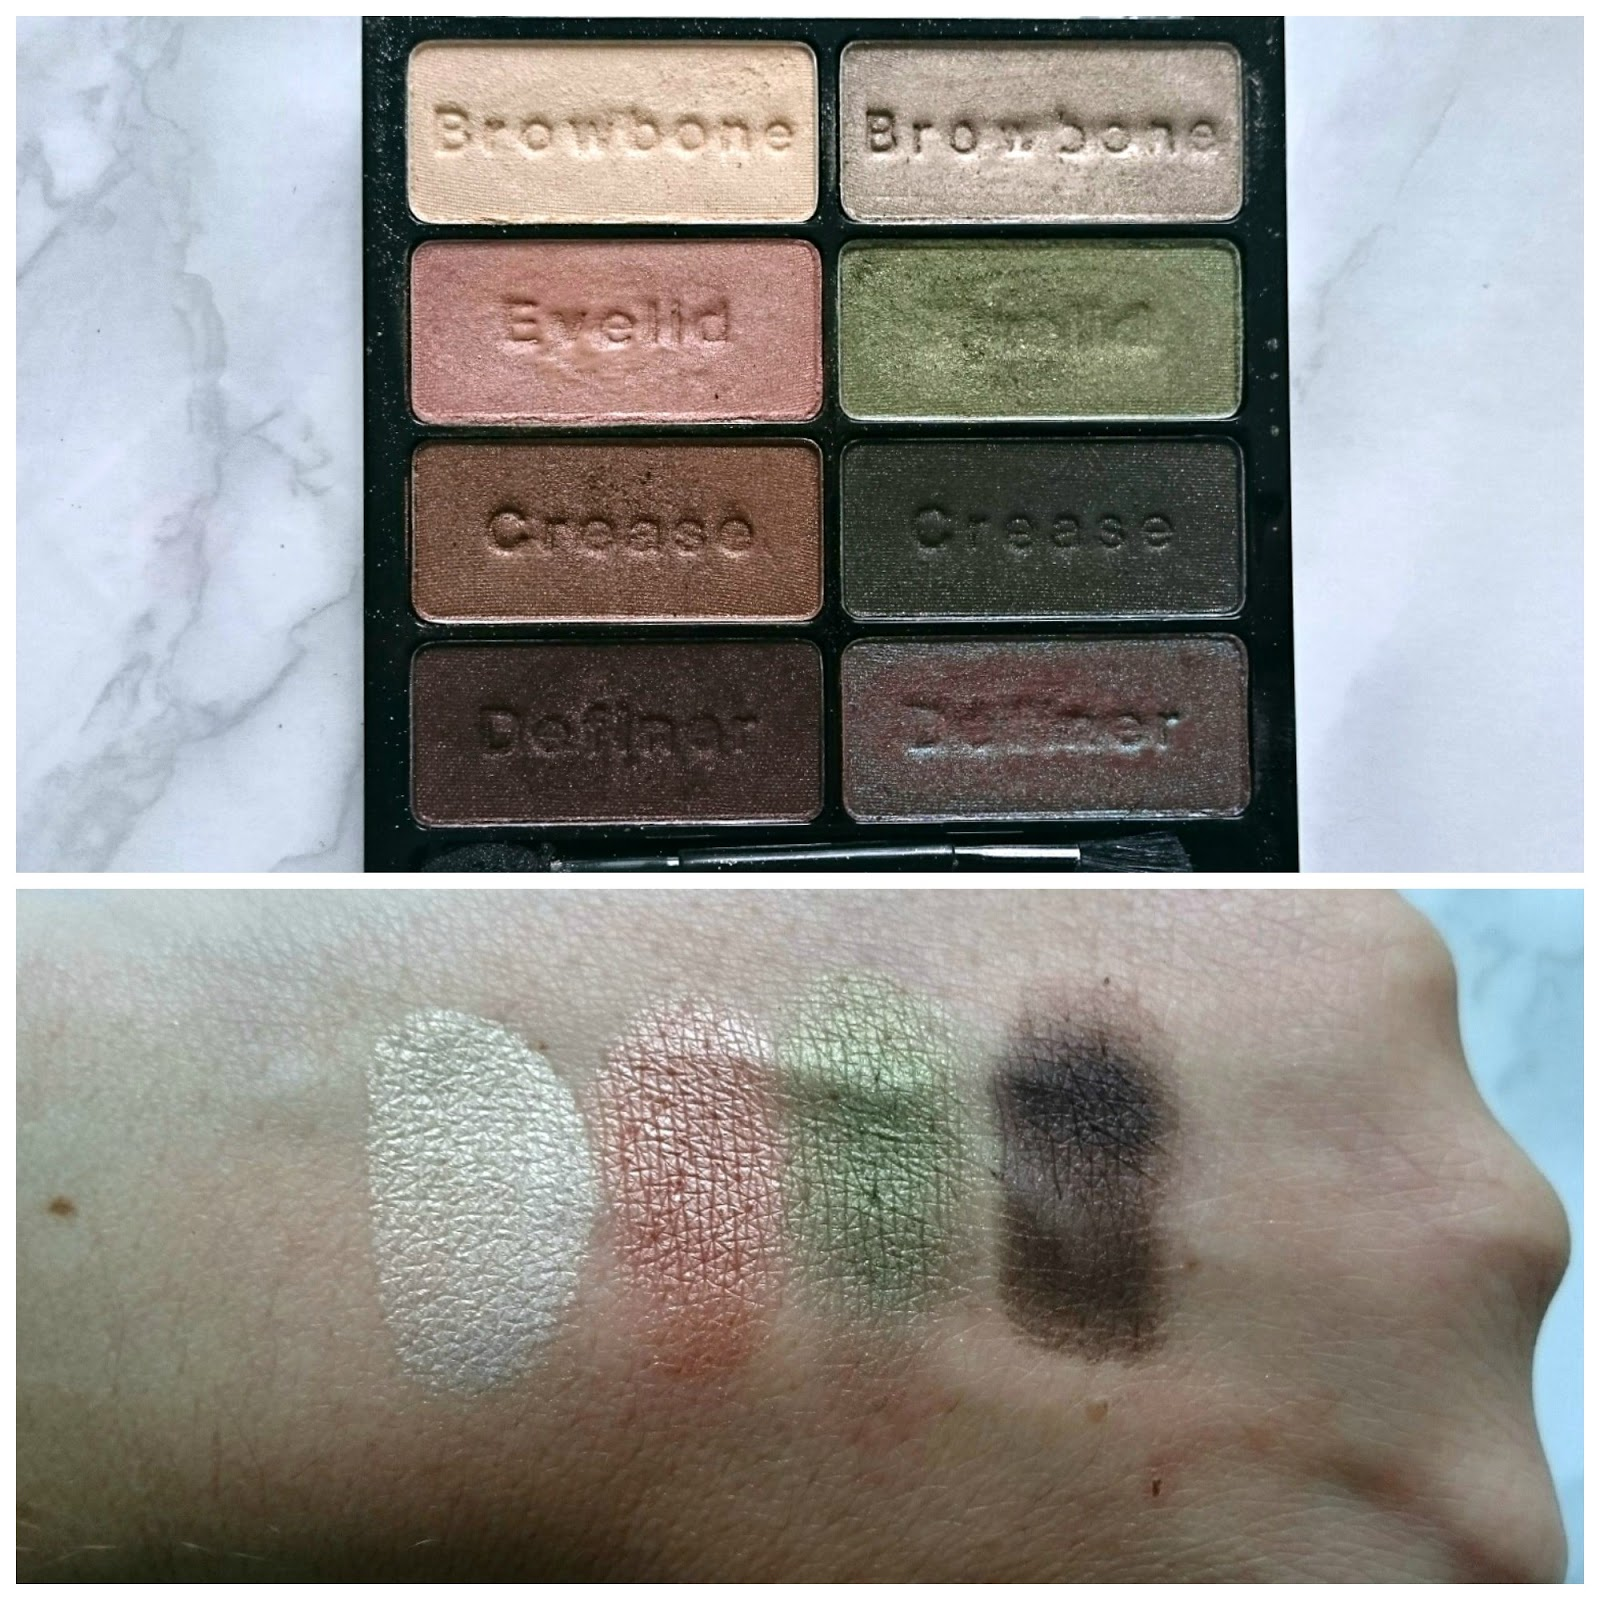 Wet n Wild Comfort Zone palette makeup look